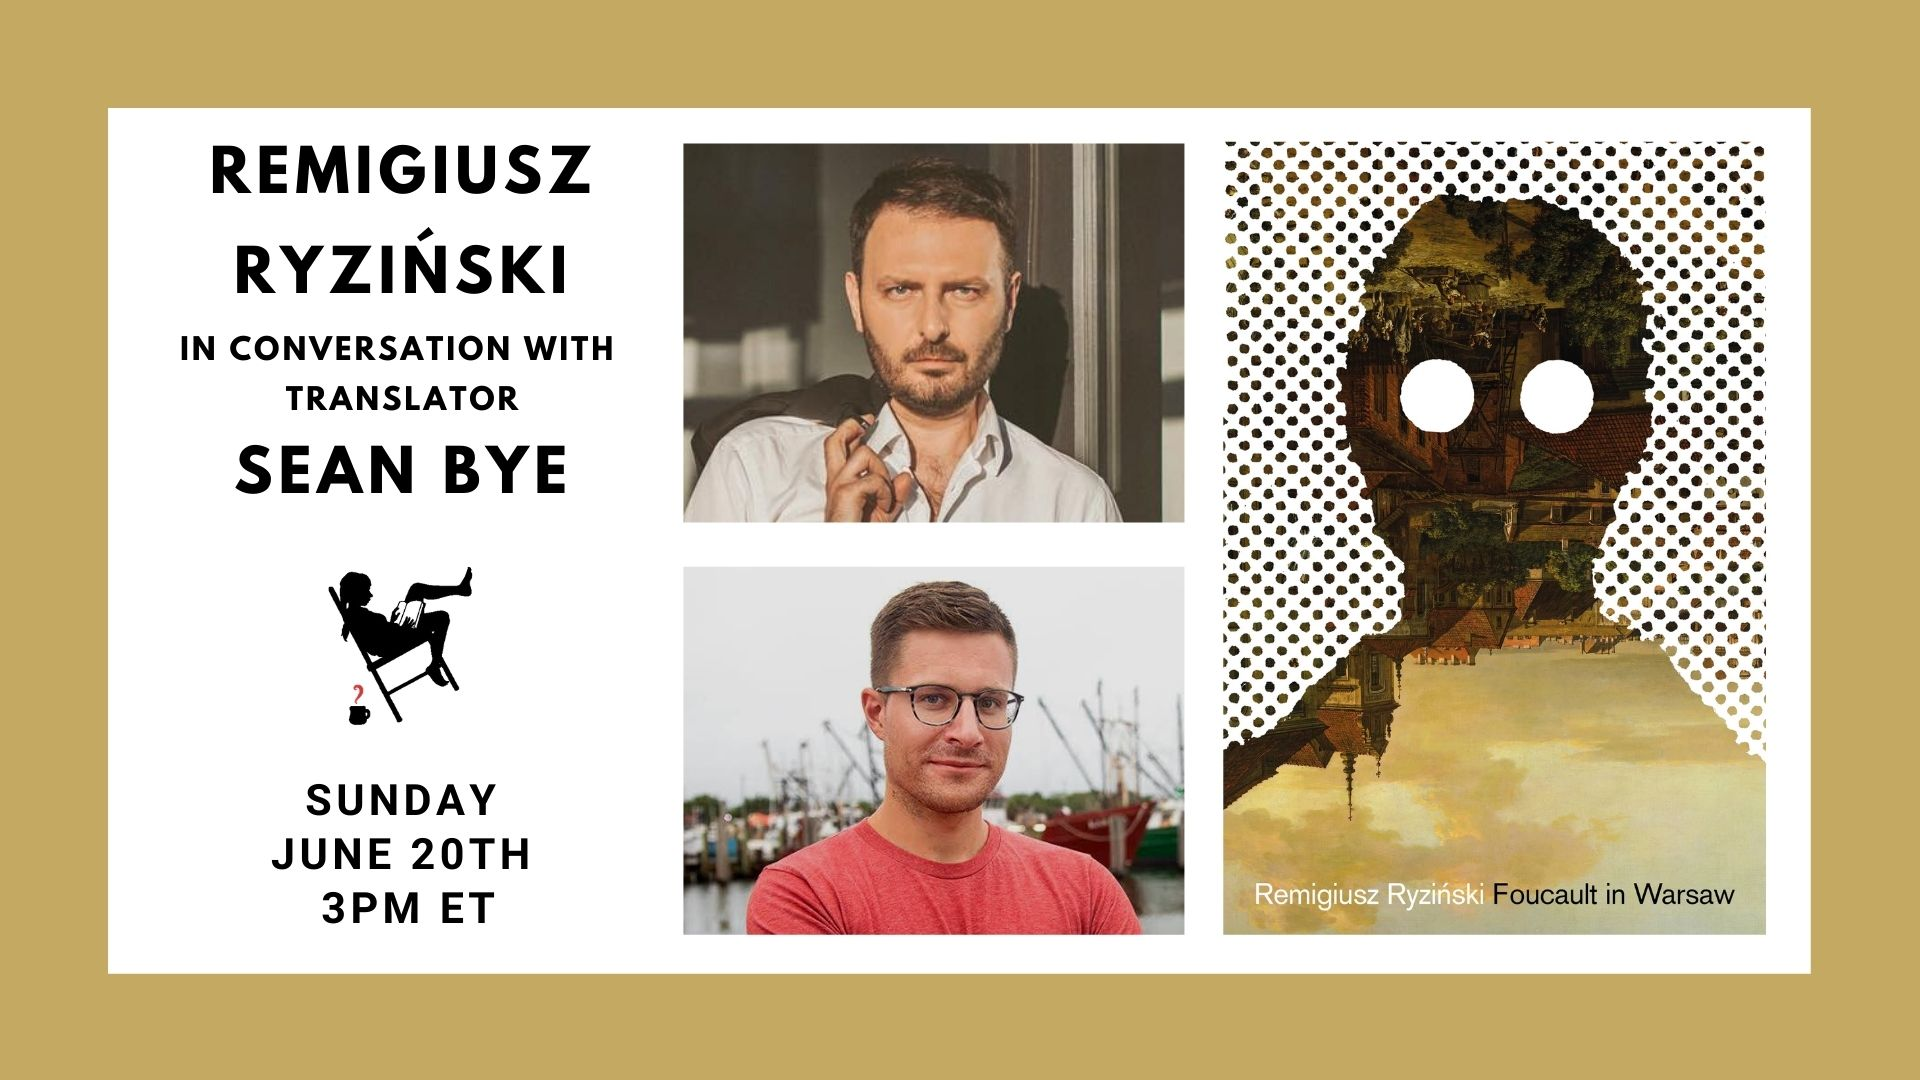 Image is of a tan border with white block containing: FOUCAULT IN WARSAW book cover; the names and headshots for Remigiusz Ryziński and Sean Gasper Bye; and the event date of 6/20/21 at 3pm